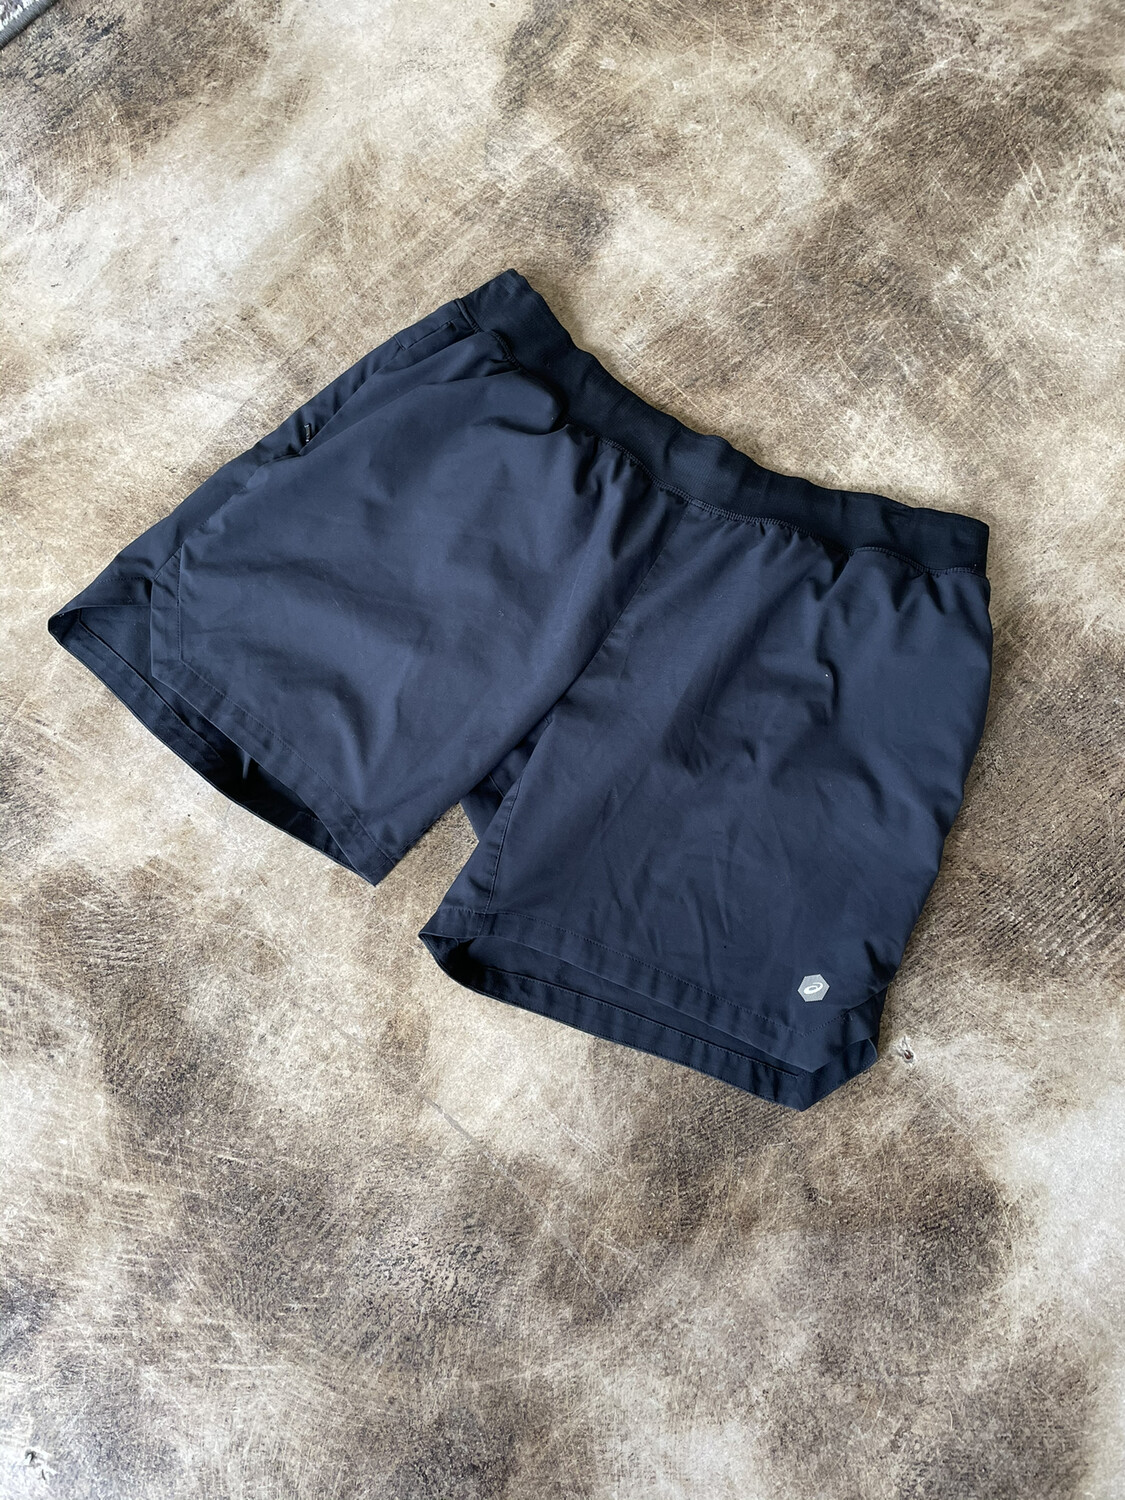 Aisics Black Shorts - XL